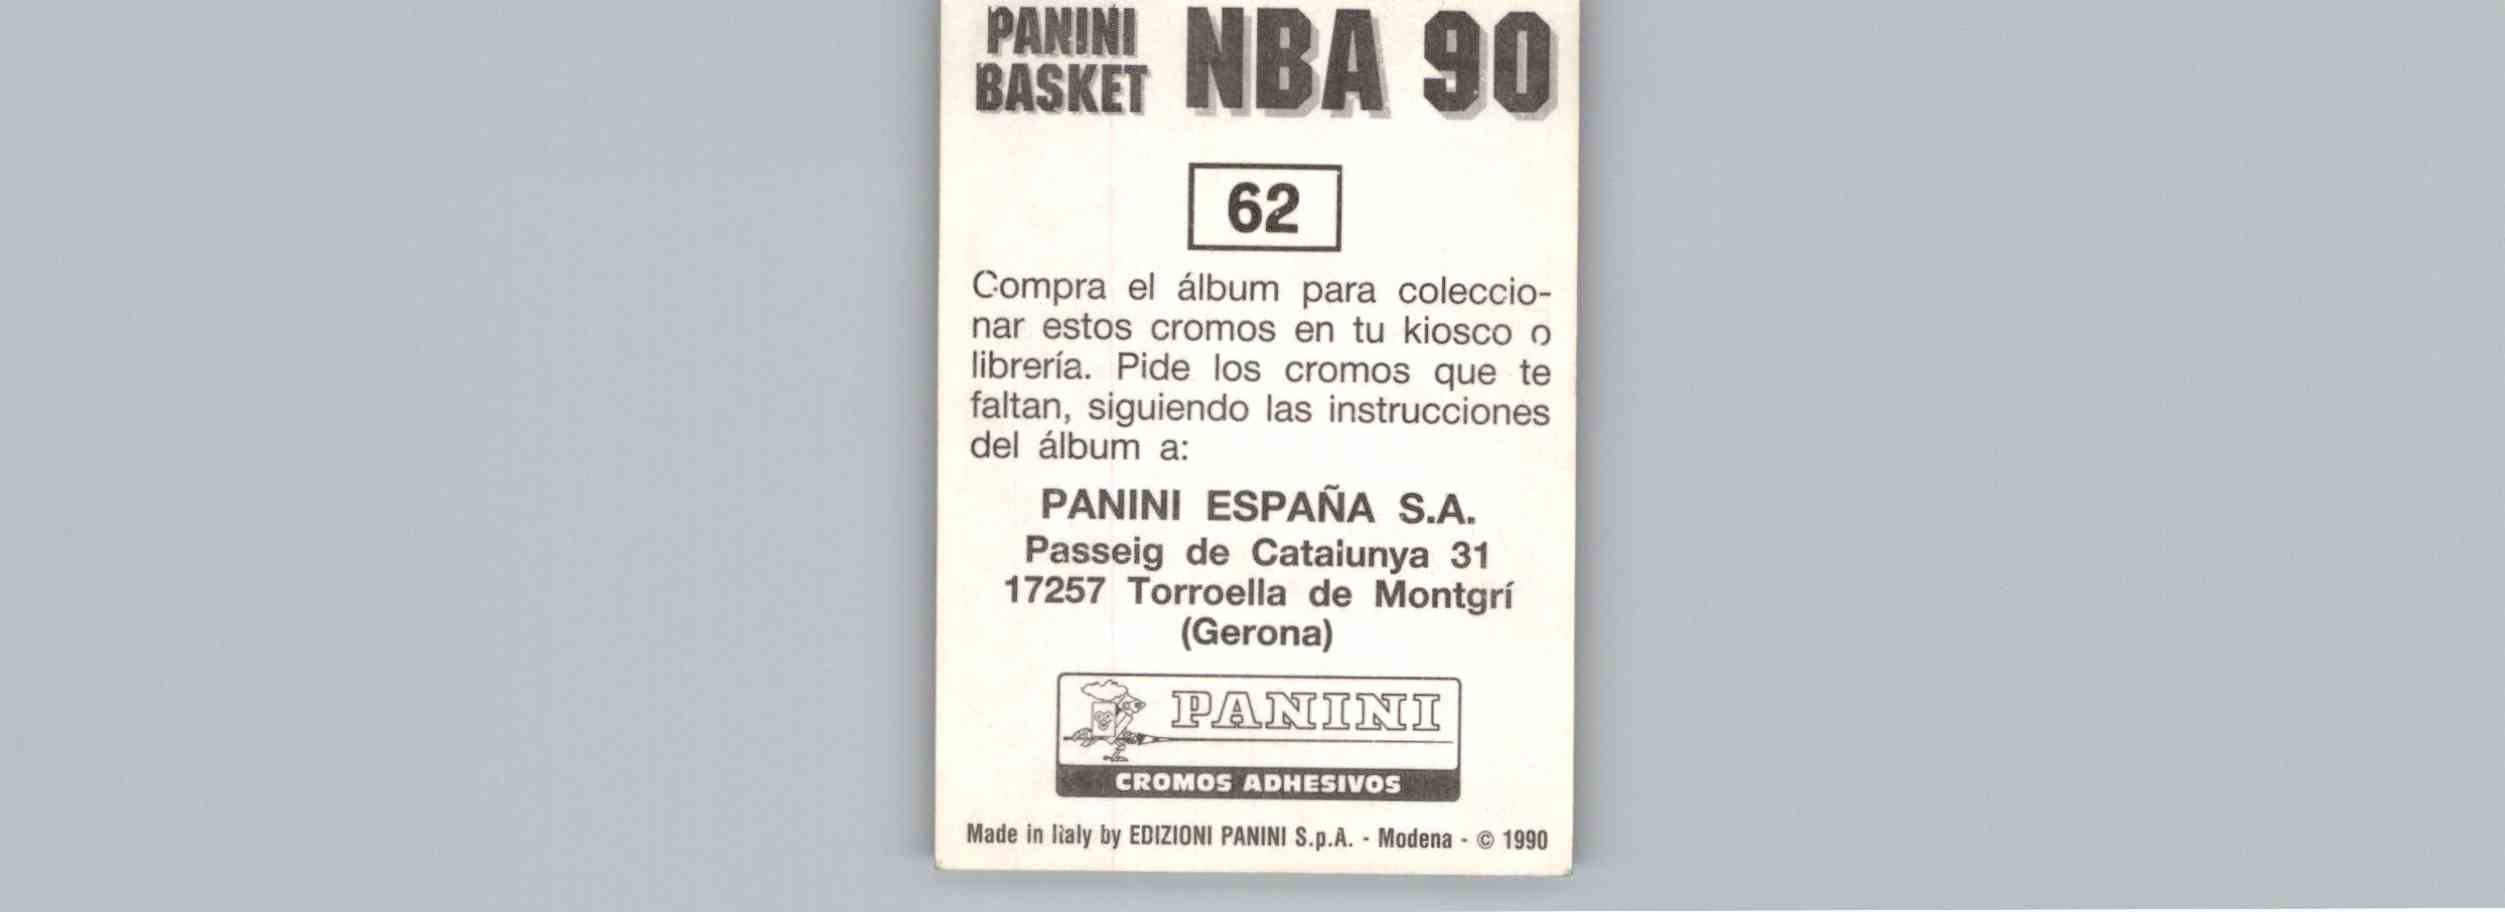 1990 91 Panini Basket NBA 90 Base Antoine Carr 62 on Kronozio